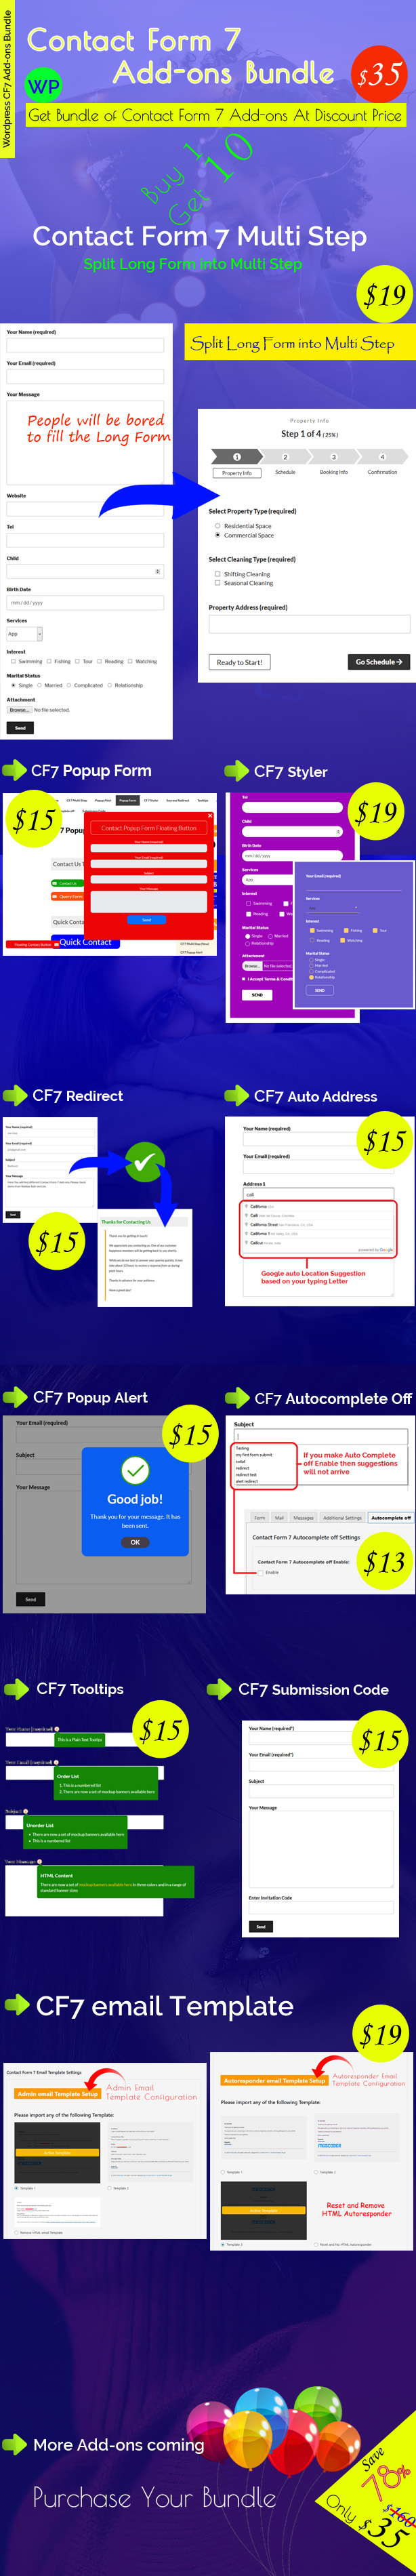 contact-form-7-plugin-add-ons-bundle